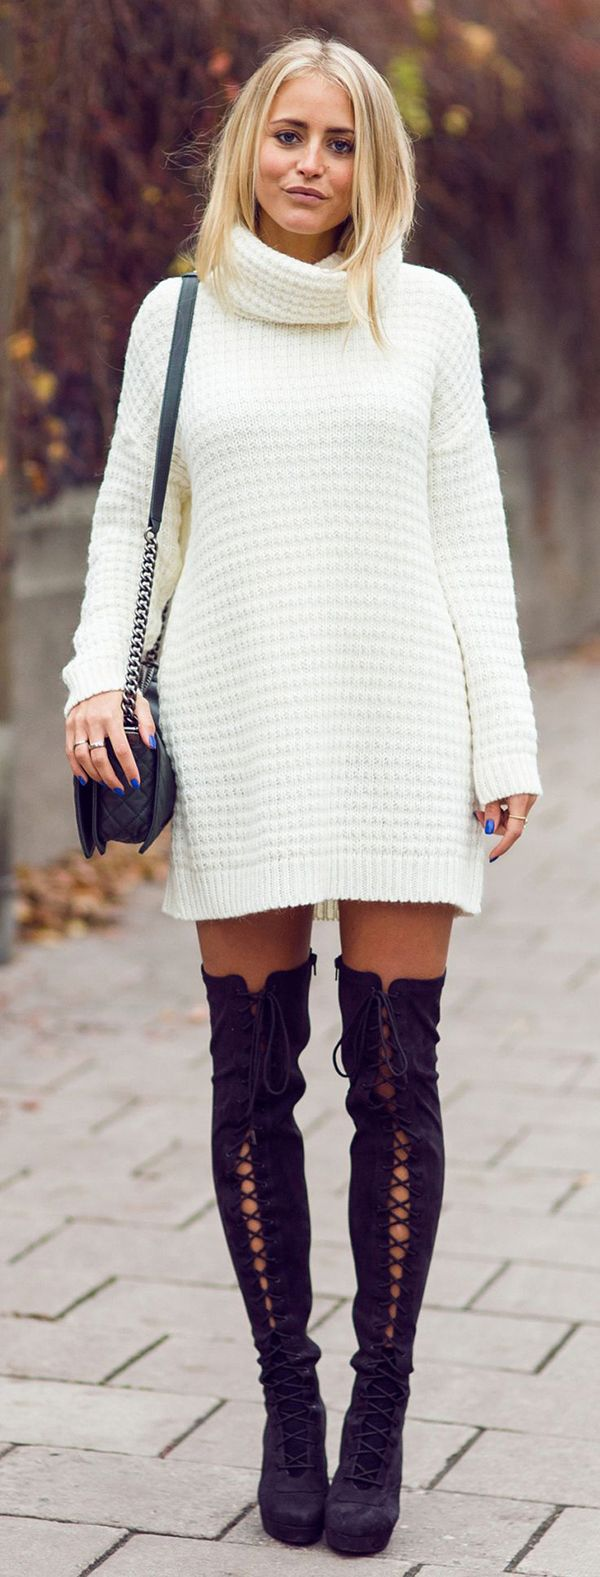 Knee High Boots With Long Sweater